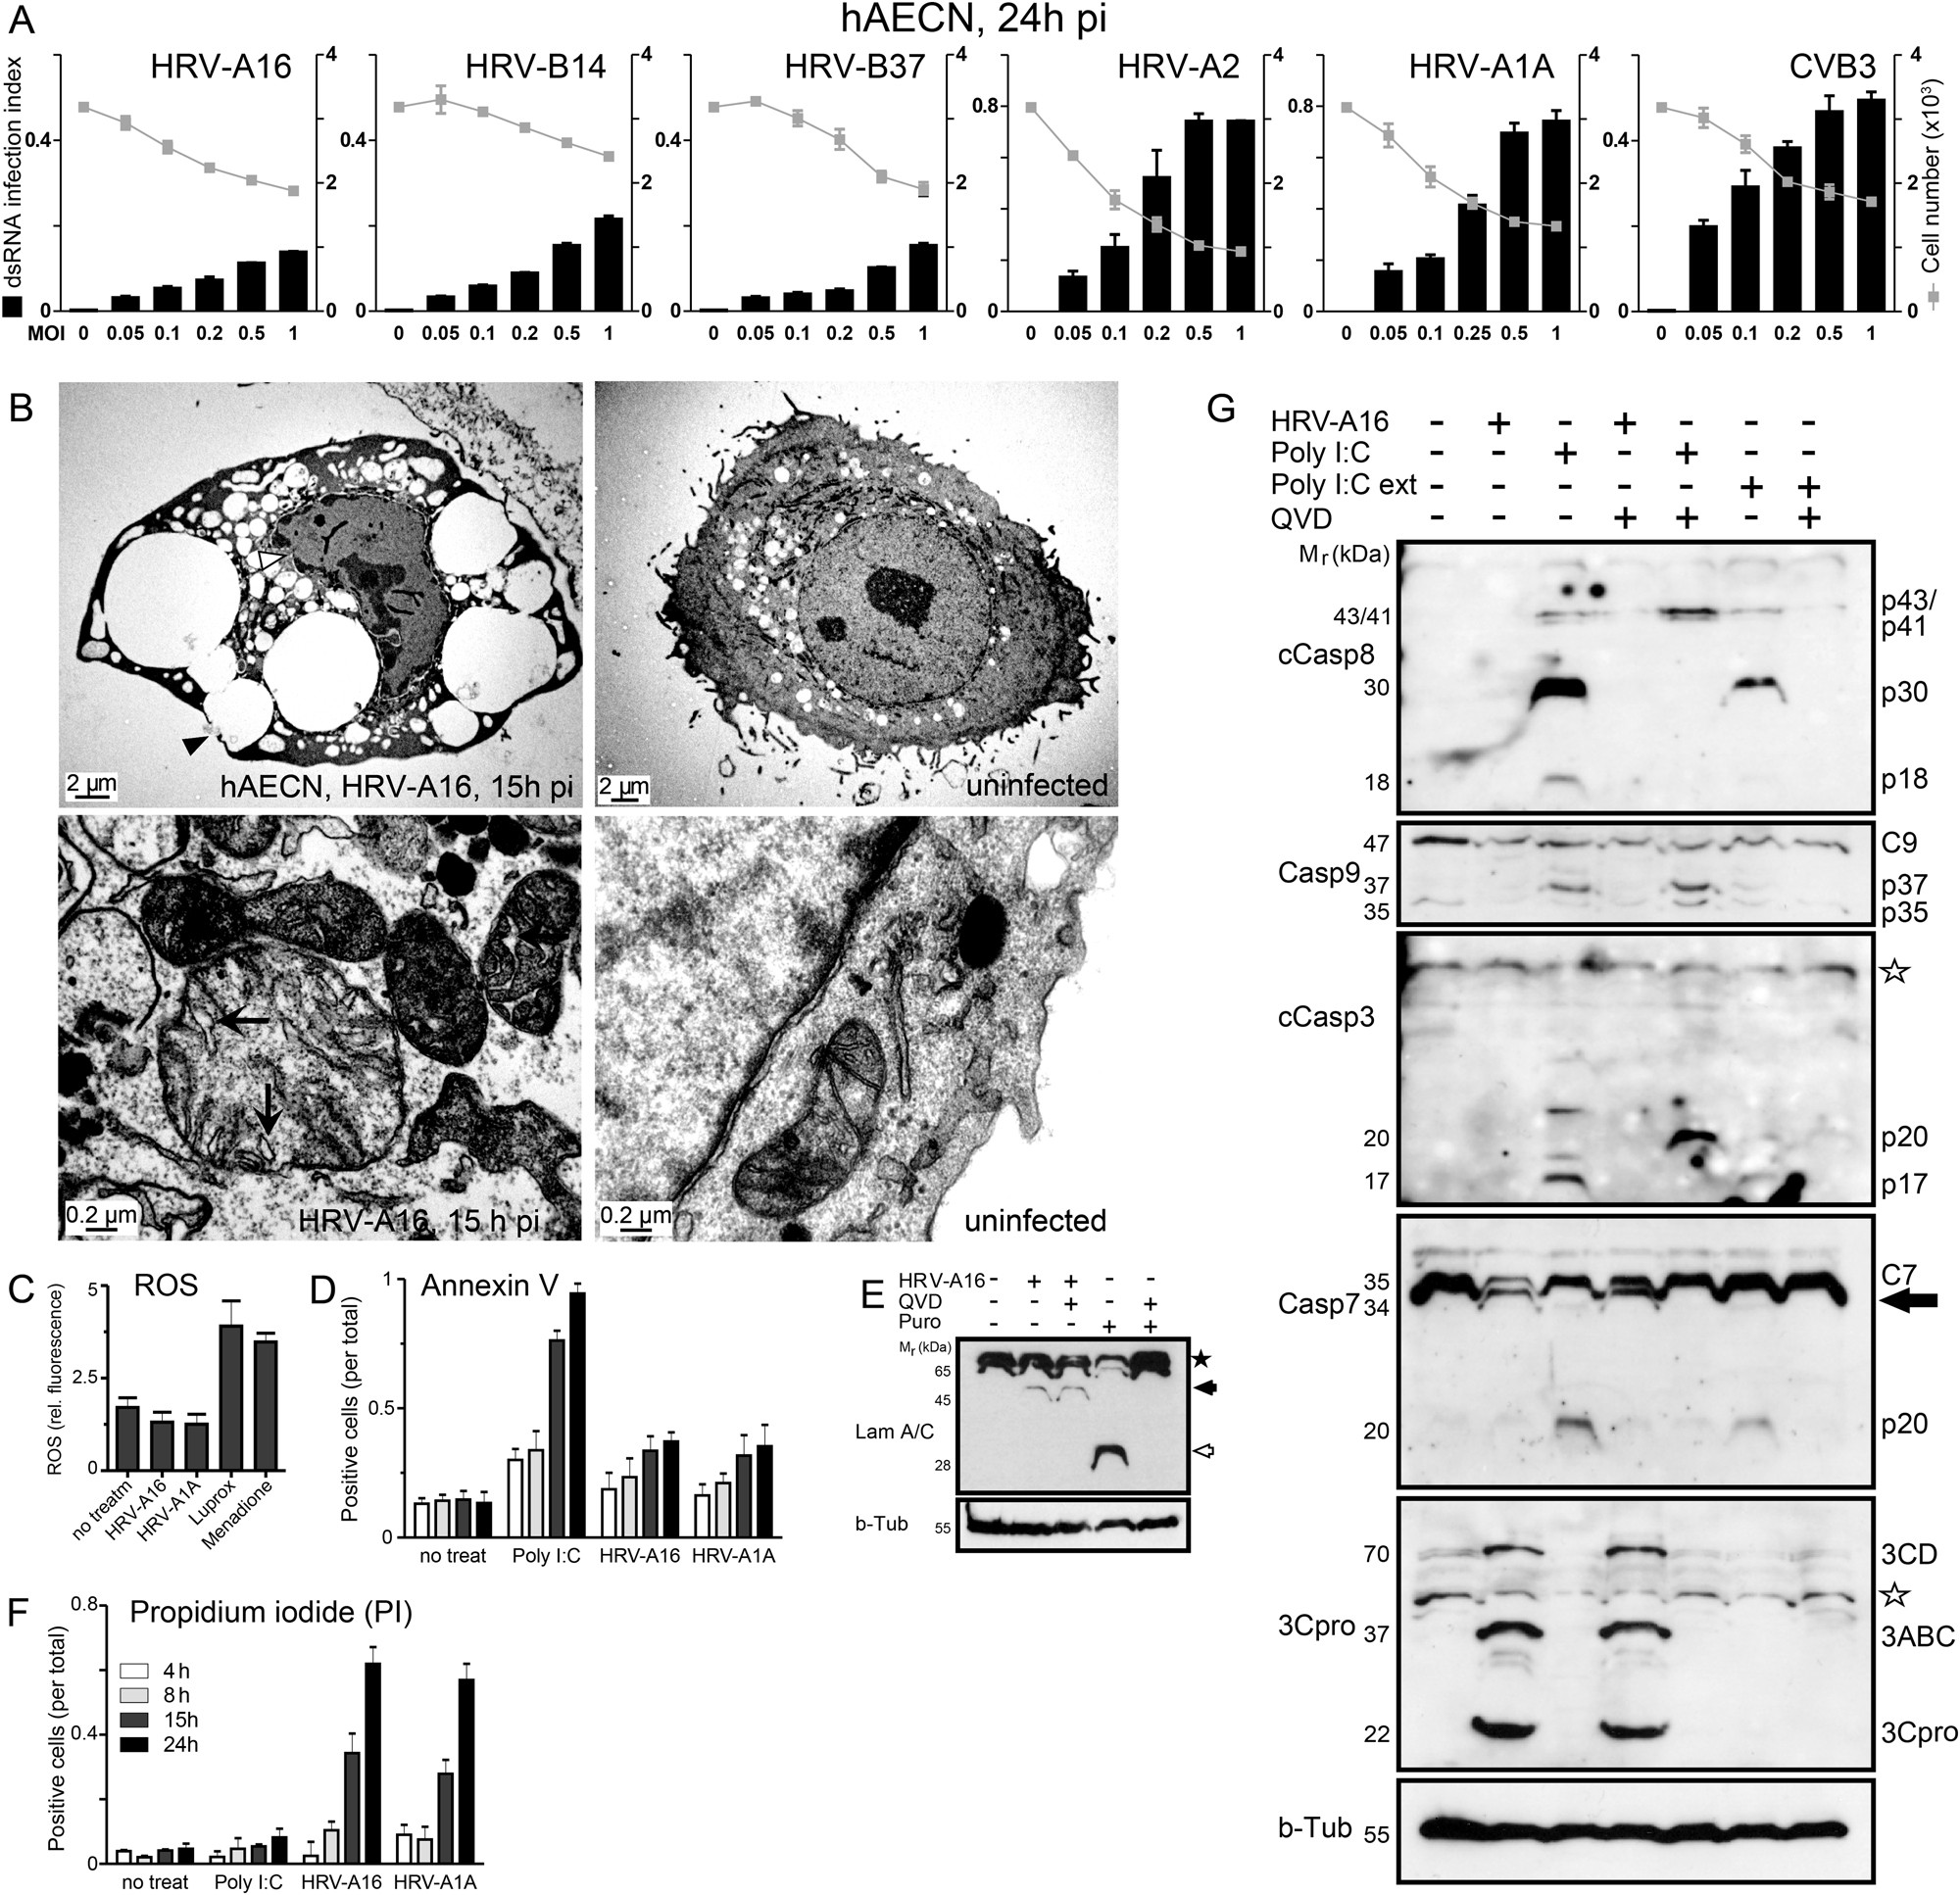 Rhinovirus 3c Protease Suppresses Apoptosis And Triggers Caspase X10 3 Way Switch Diagram Independent Cell Death Disease